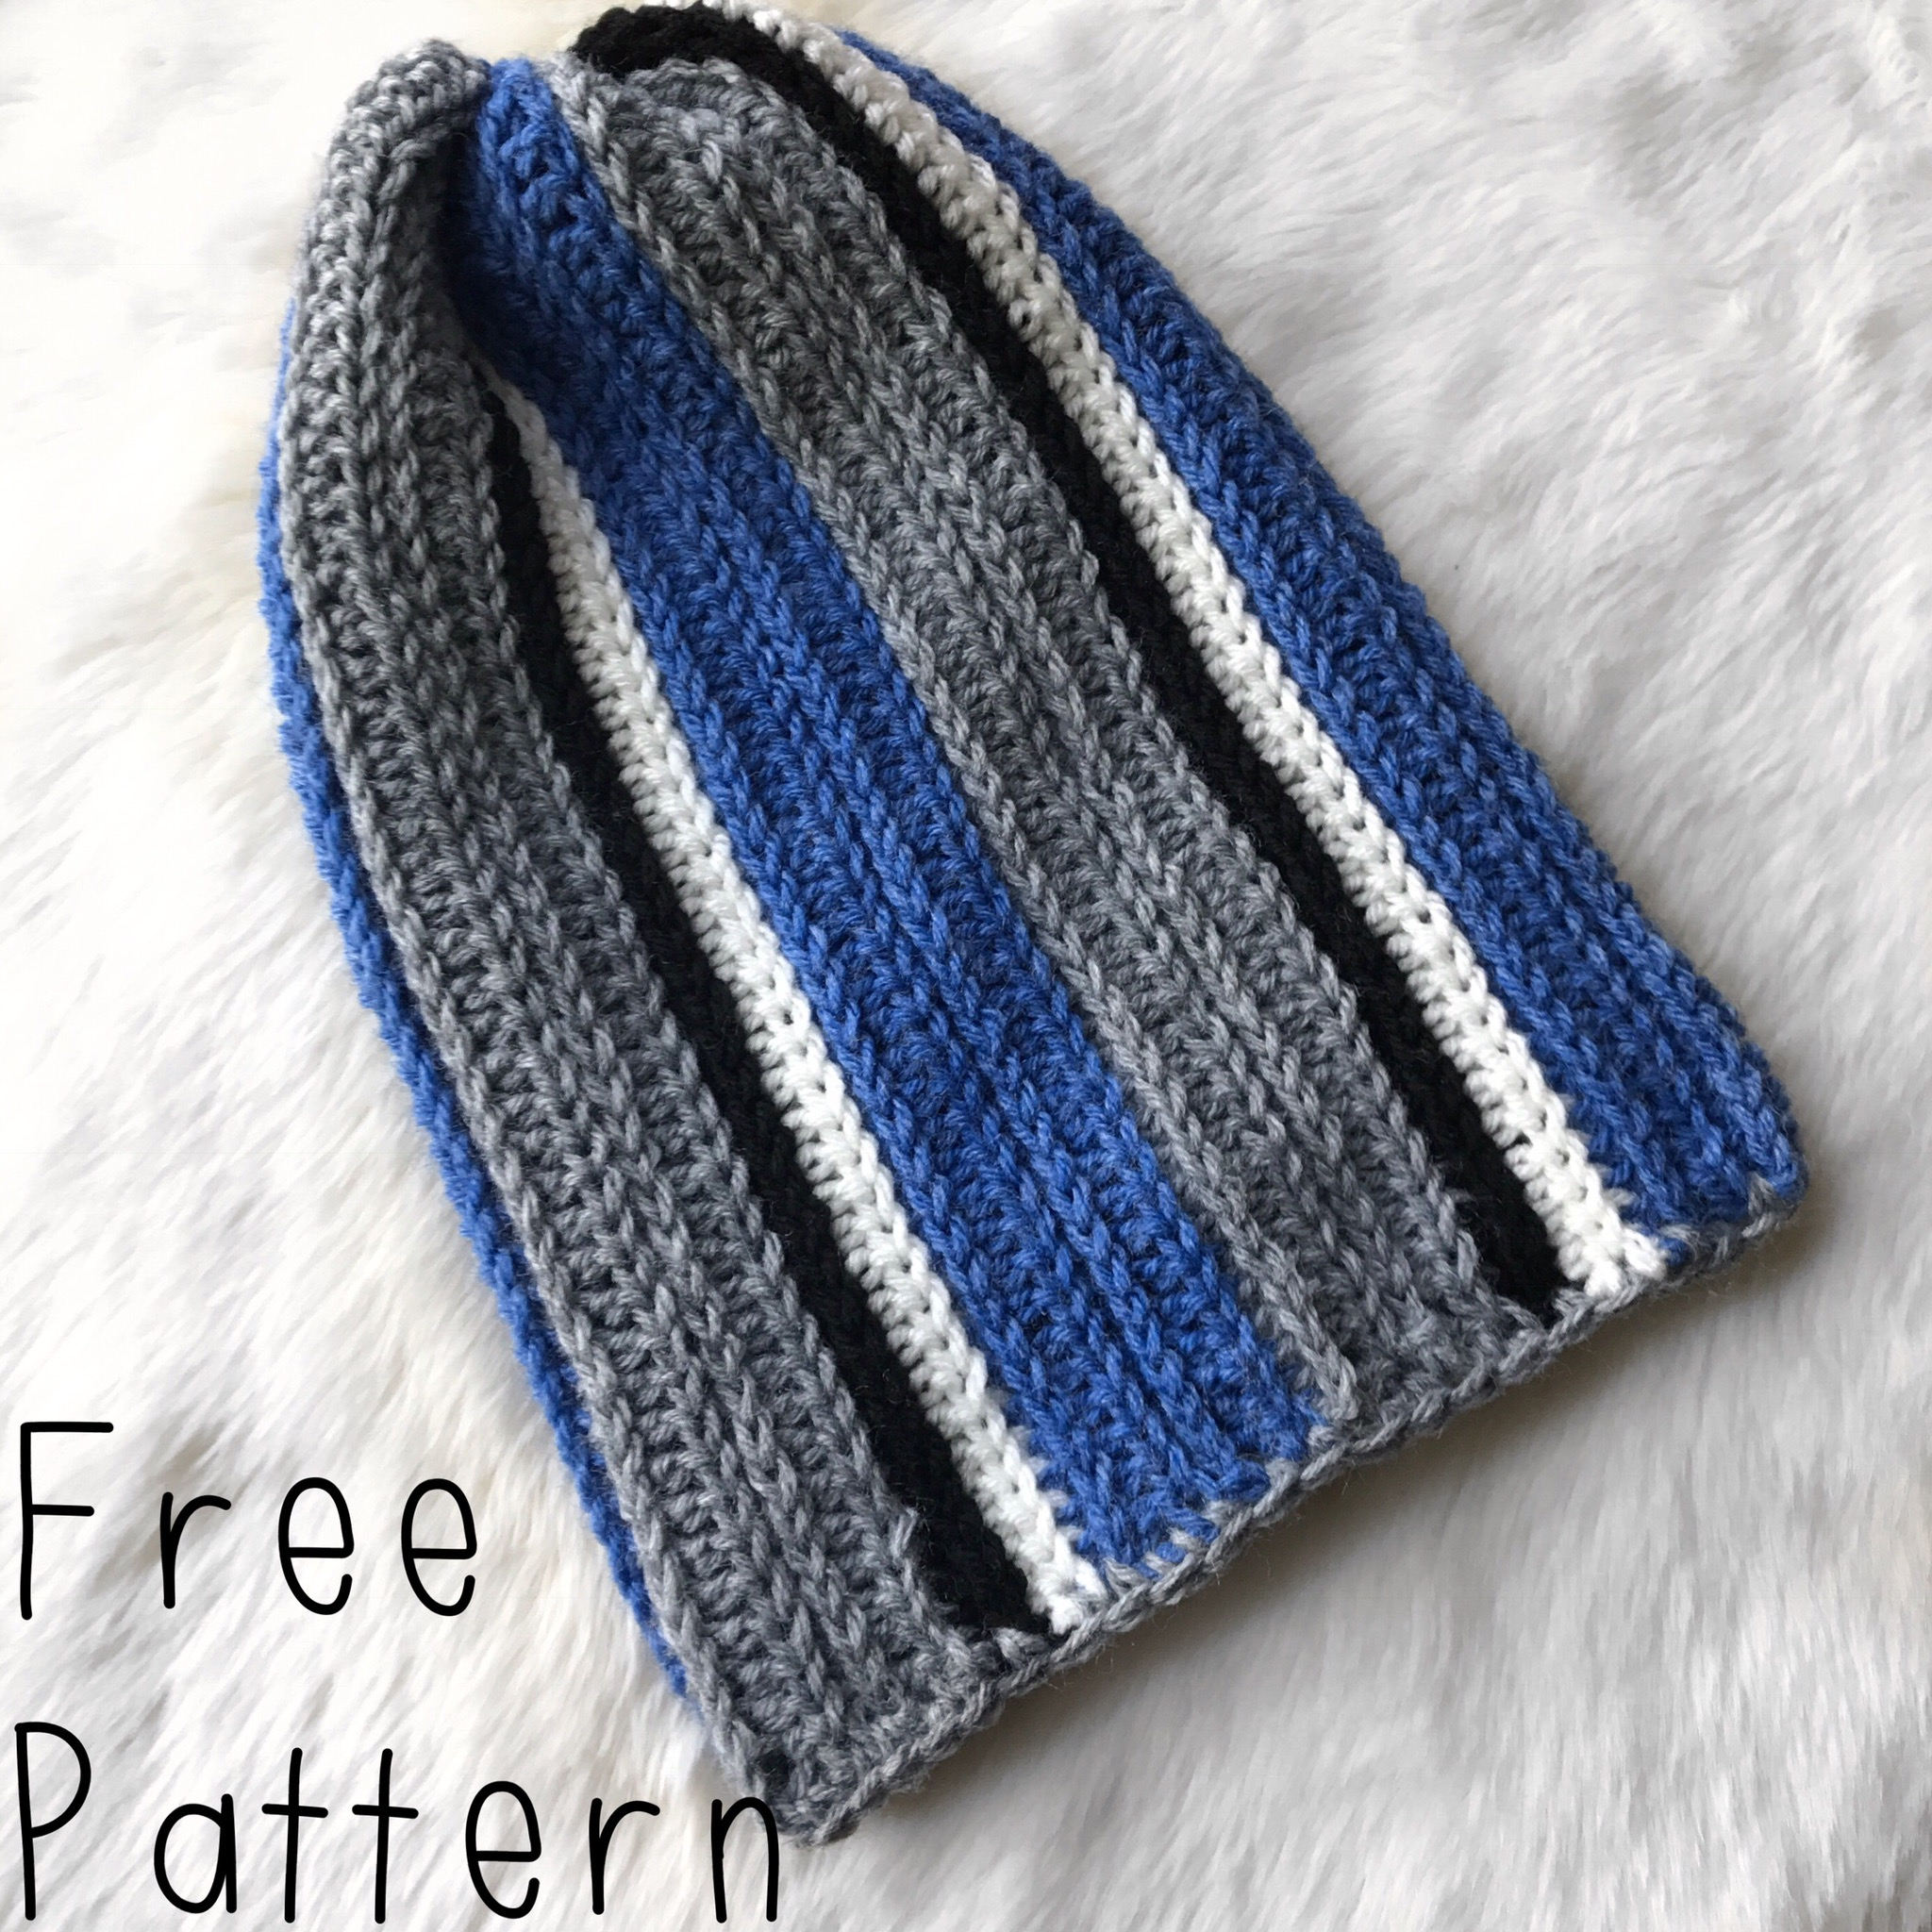 635ef86db70 Every fall my husband asks for a new beanie to wear. This year he requested  one with his football teams colors! This pattern is perfect for customizing  to ...